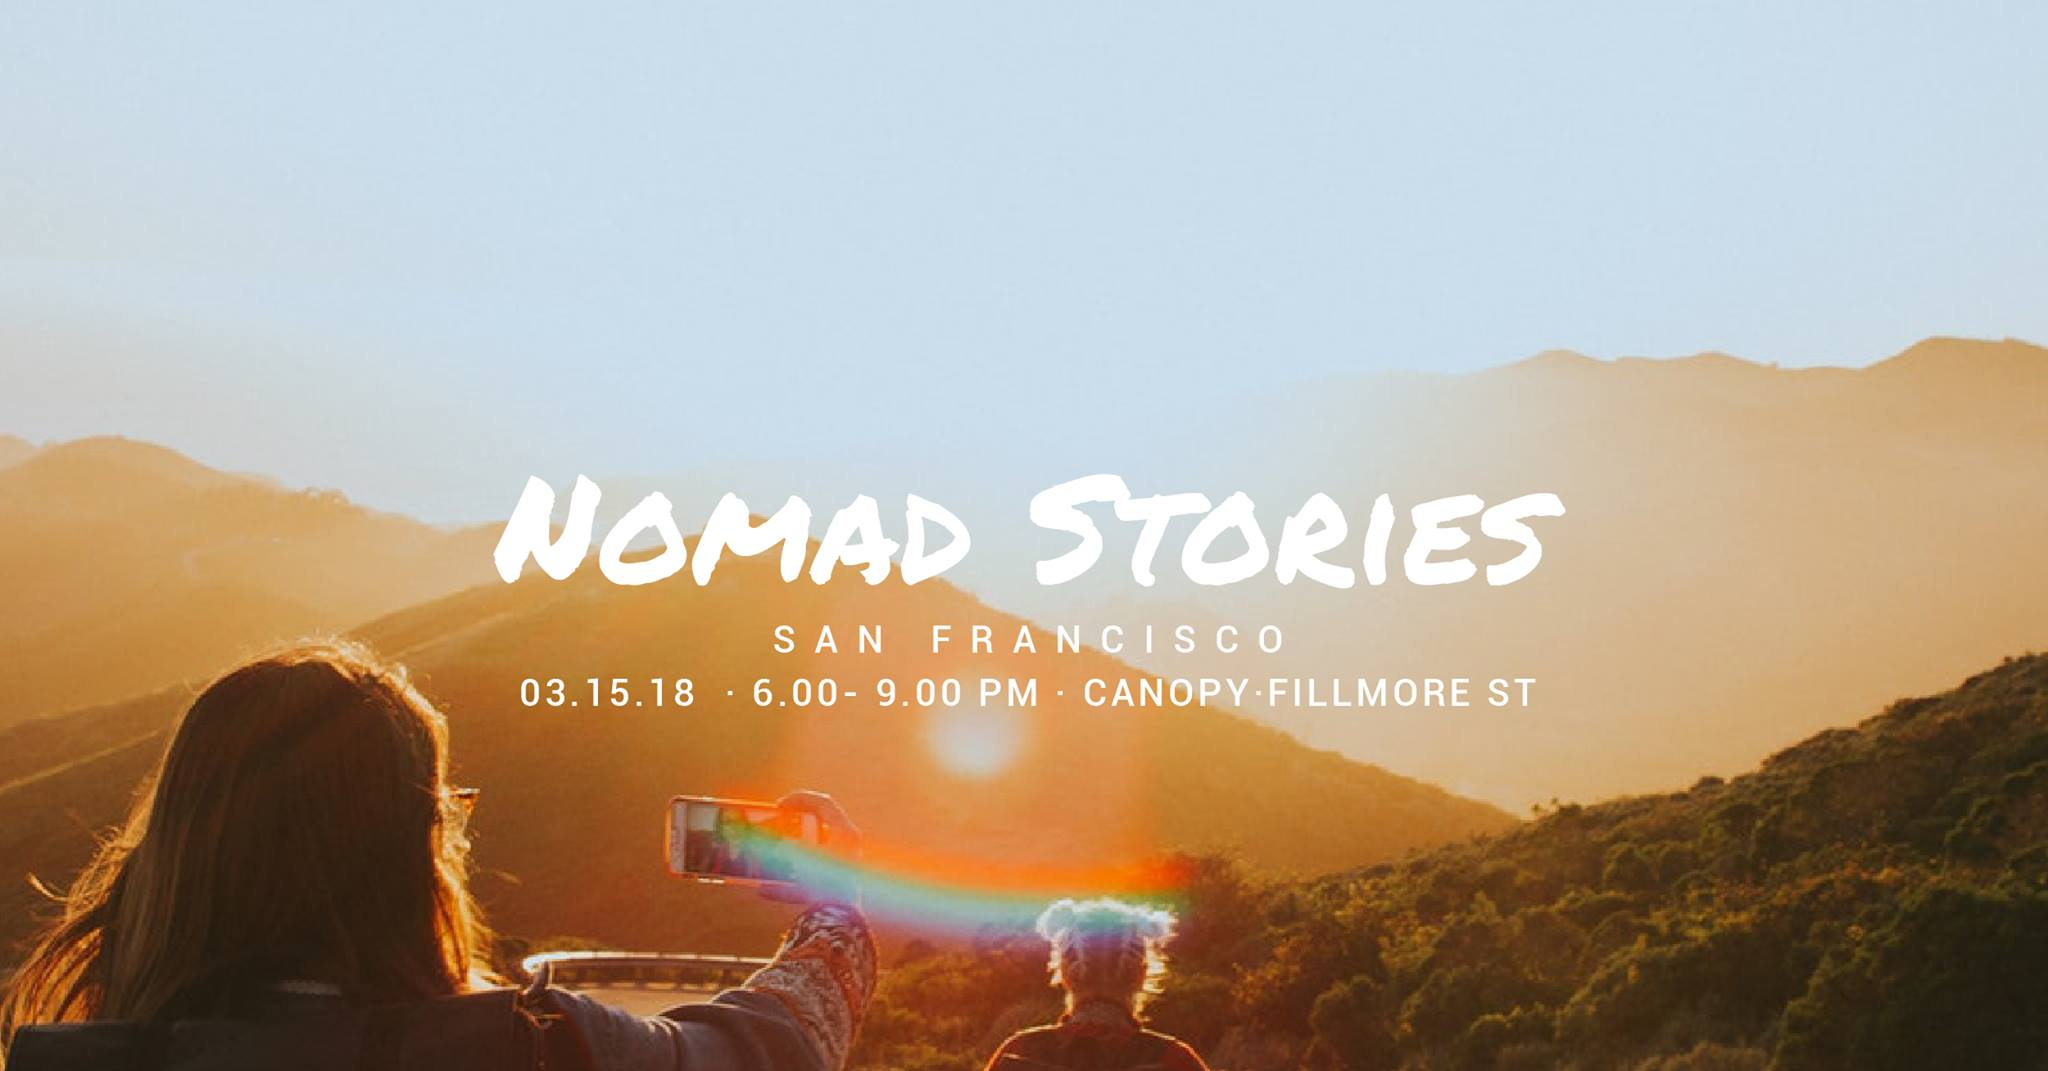 NOMAD STORIES